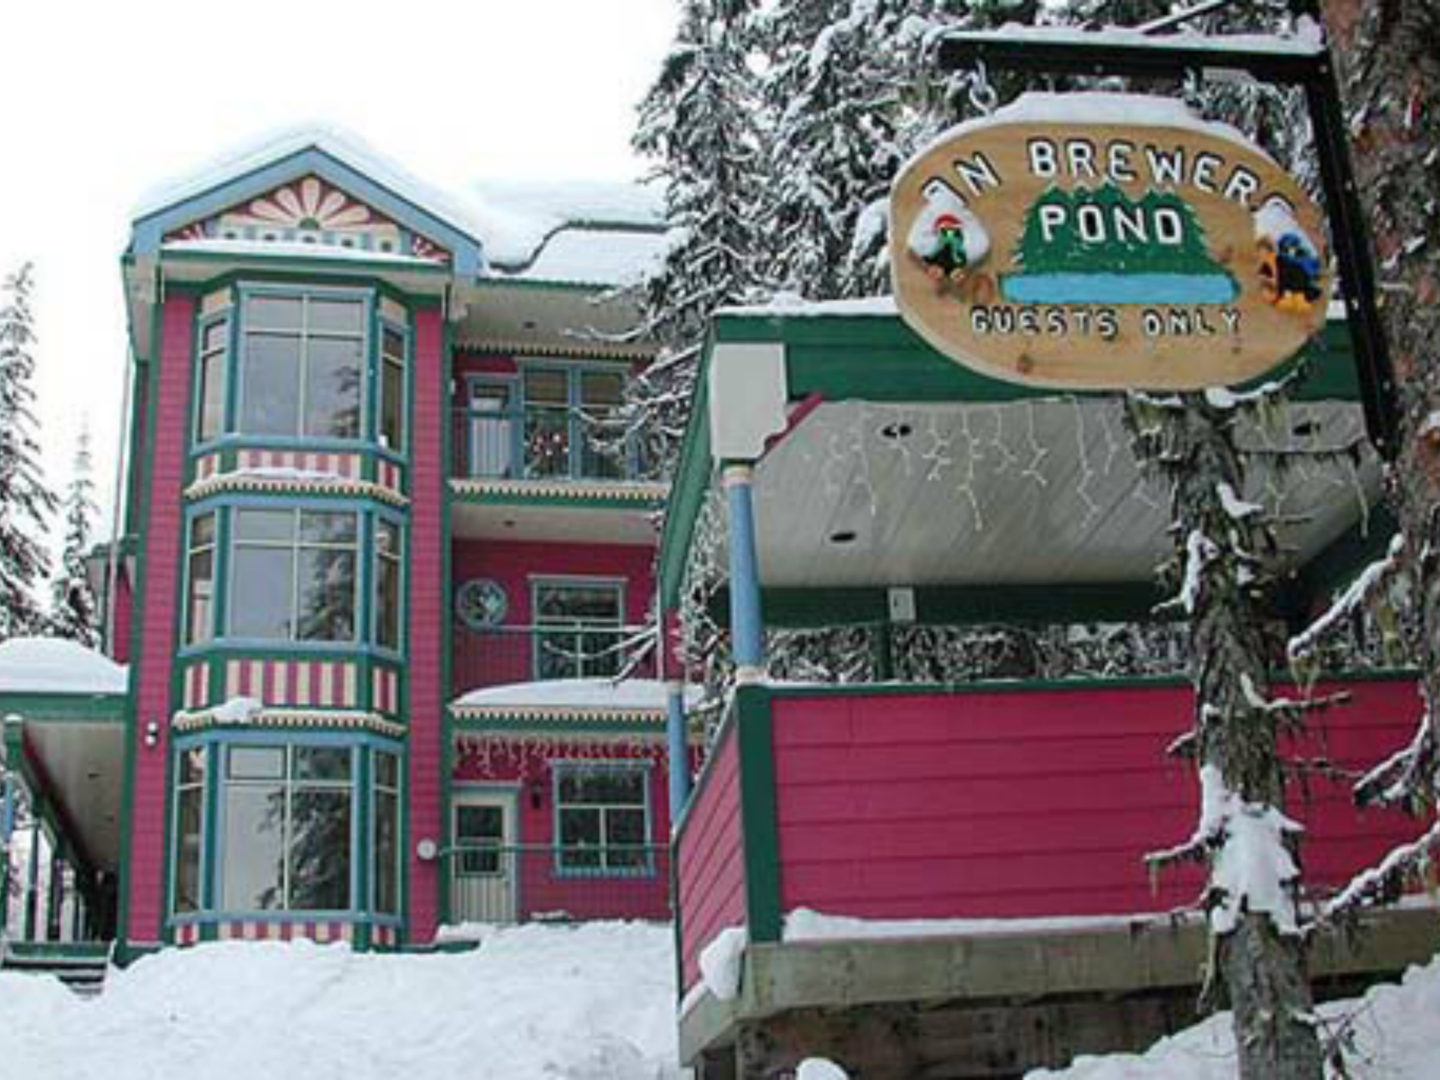 Silver Star Stays - On Brewer's Pond